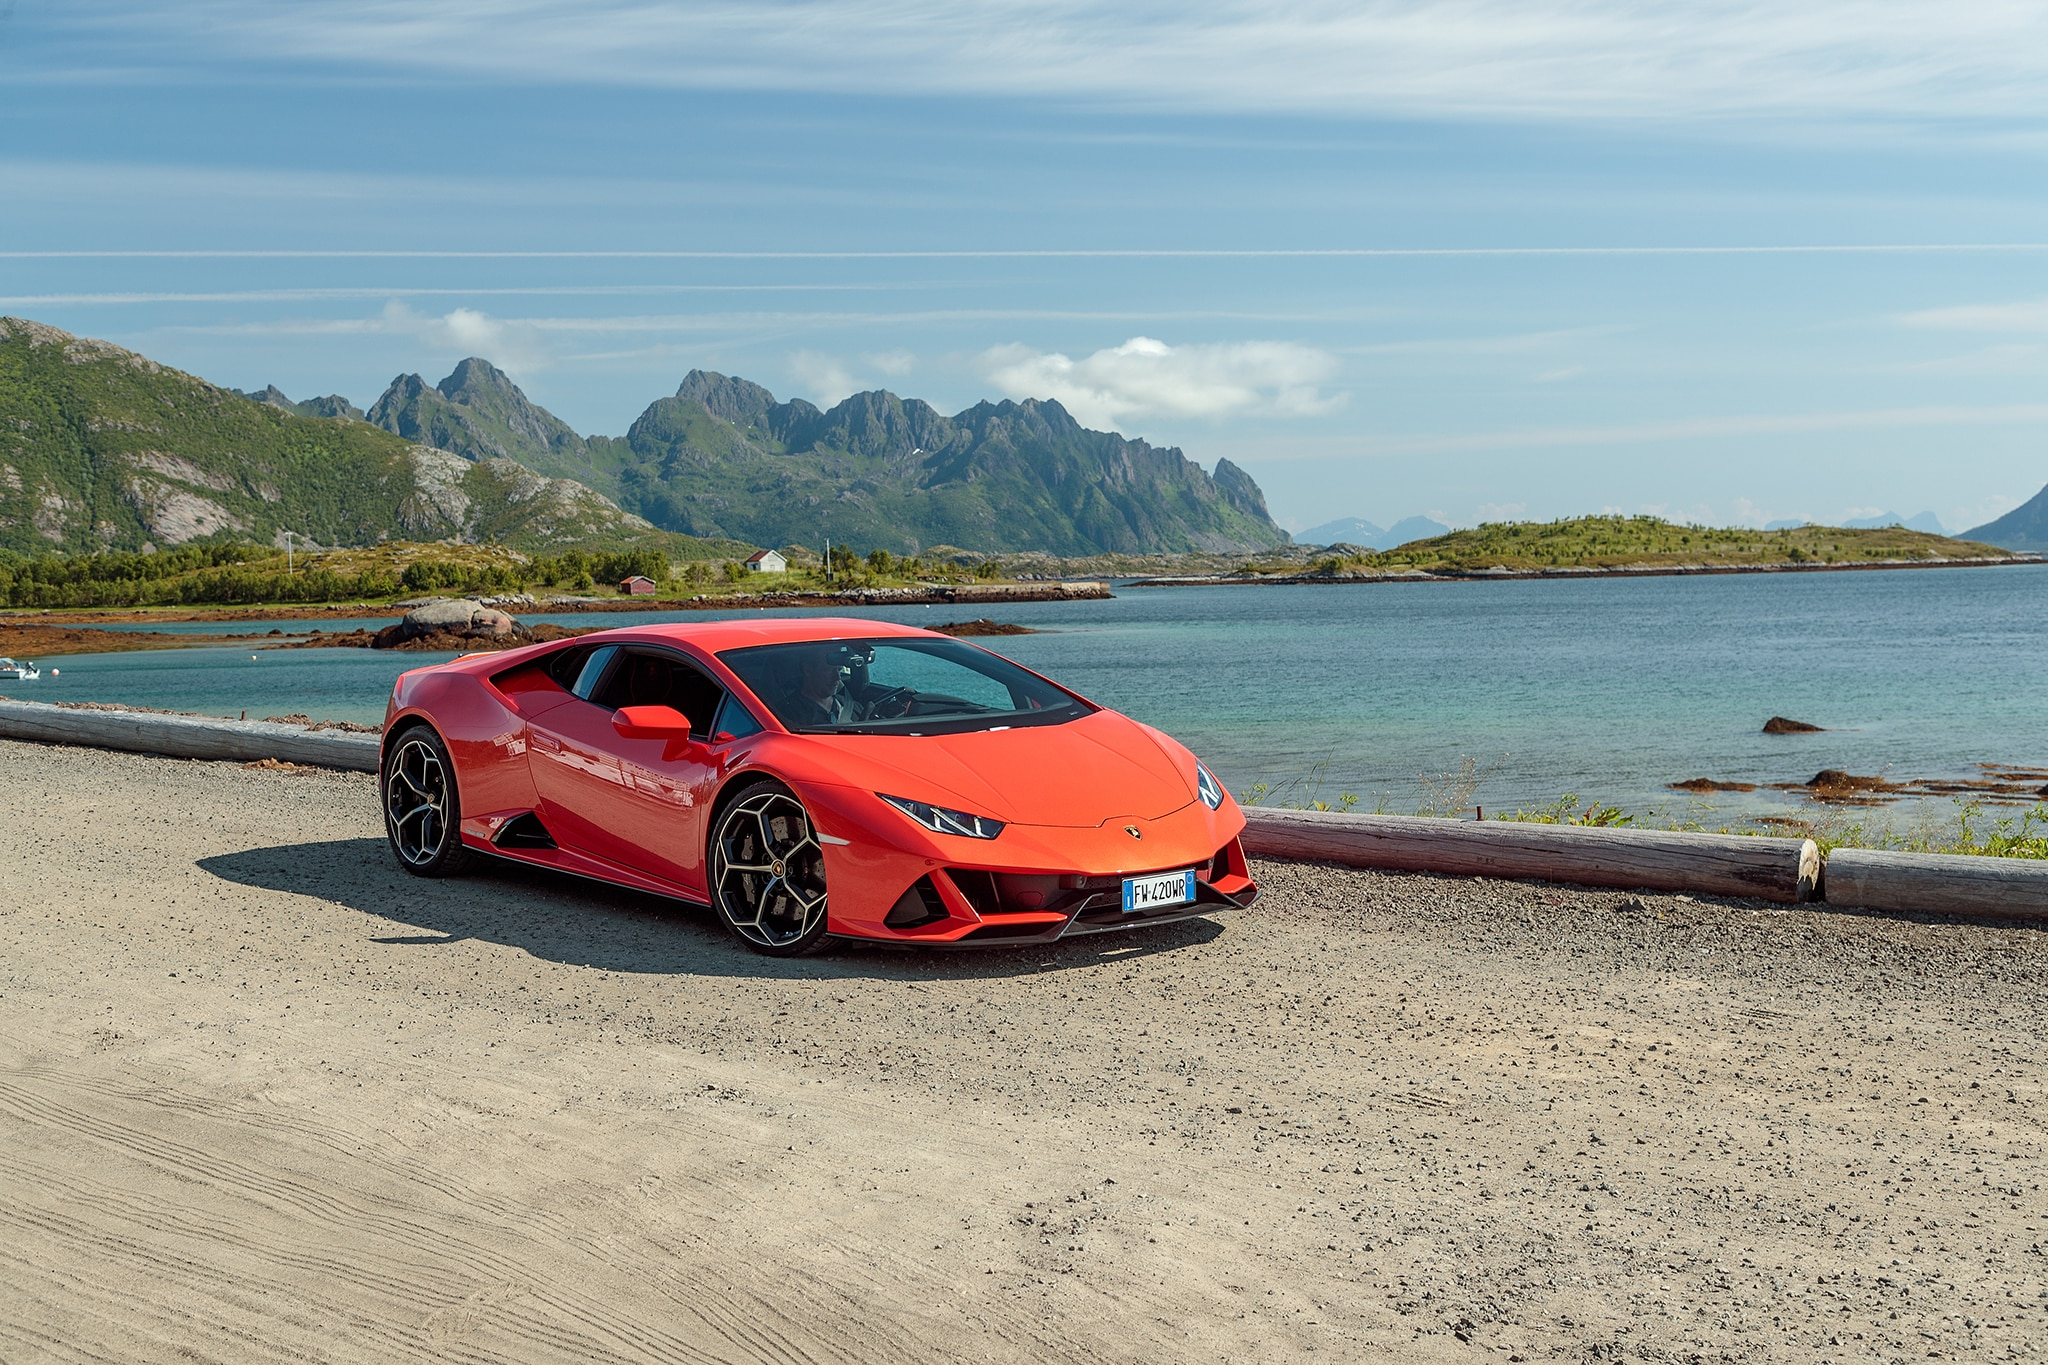 Generally Electric Invading The Land Of Evs In A Lambo